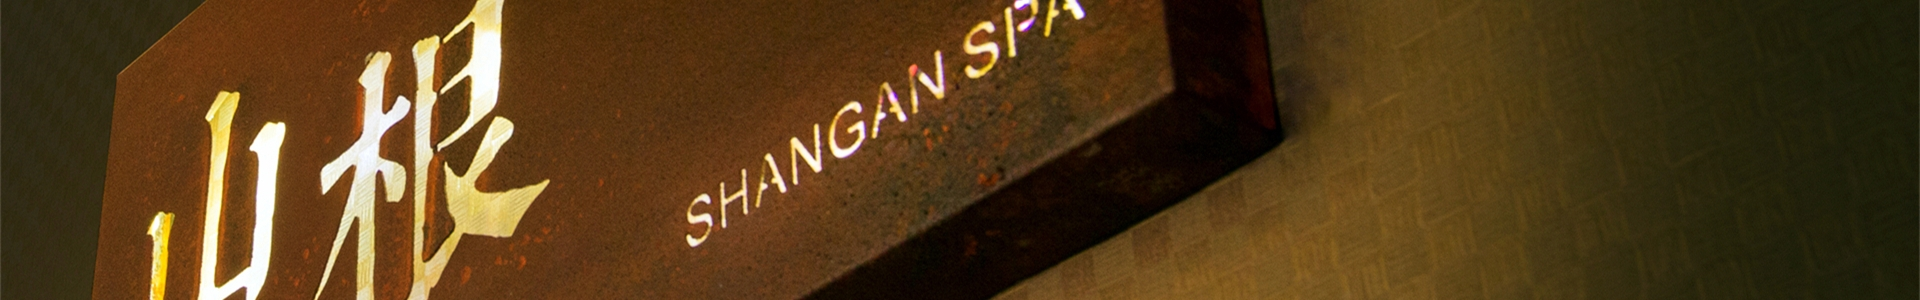 山根Gay Spa∥Shangan Man Spa